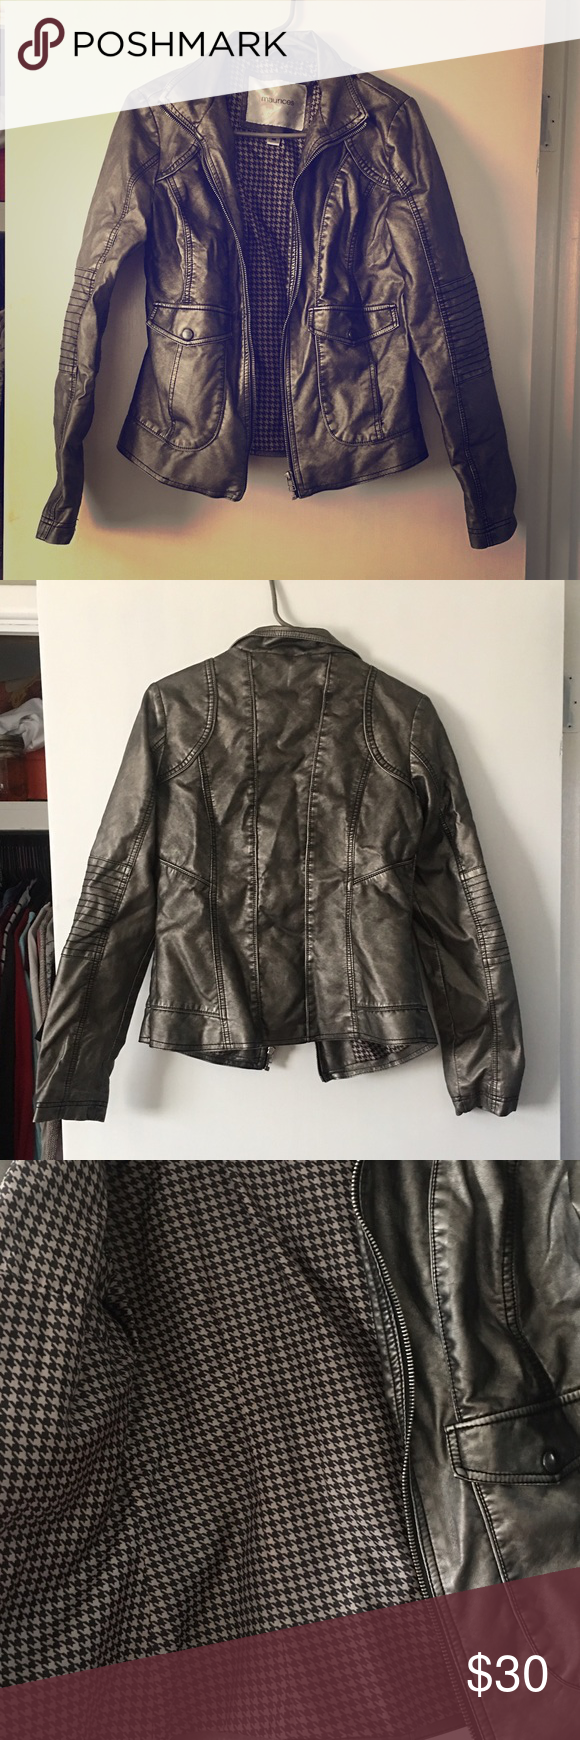 Uncategorized Leather Like Material adorable jacket metallic color lined with a wit